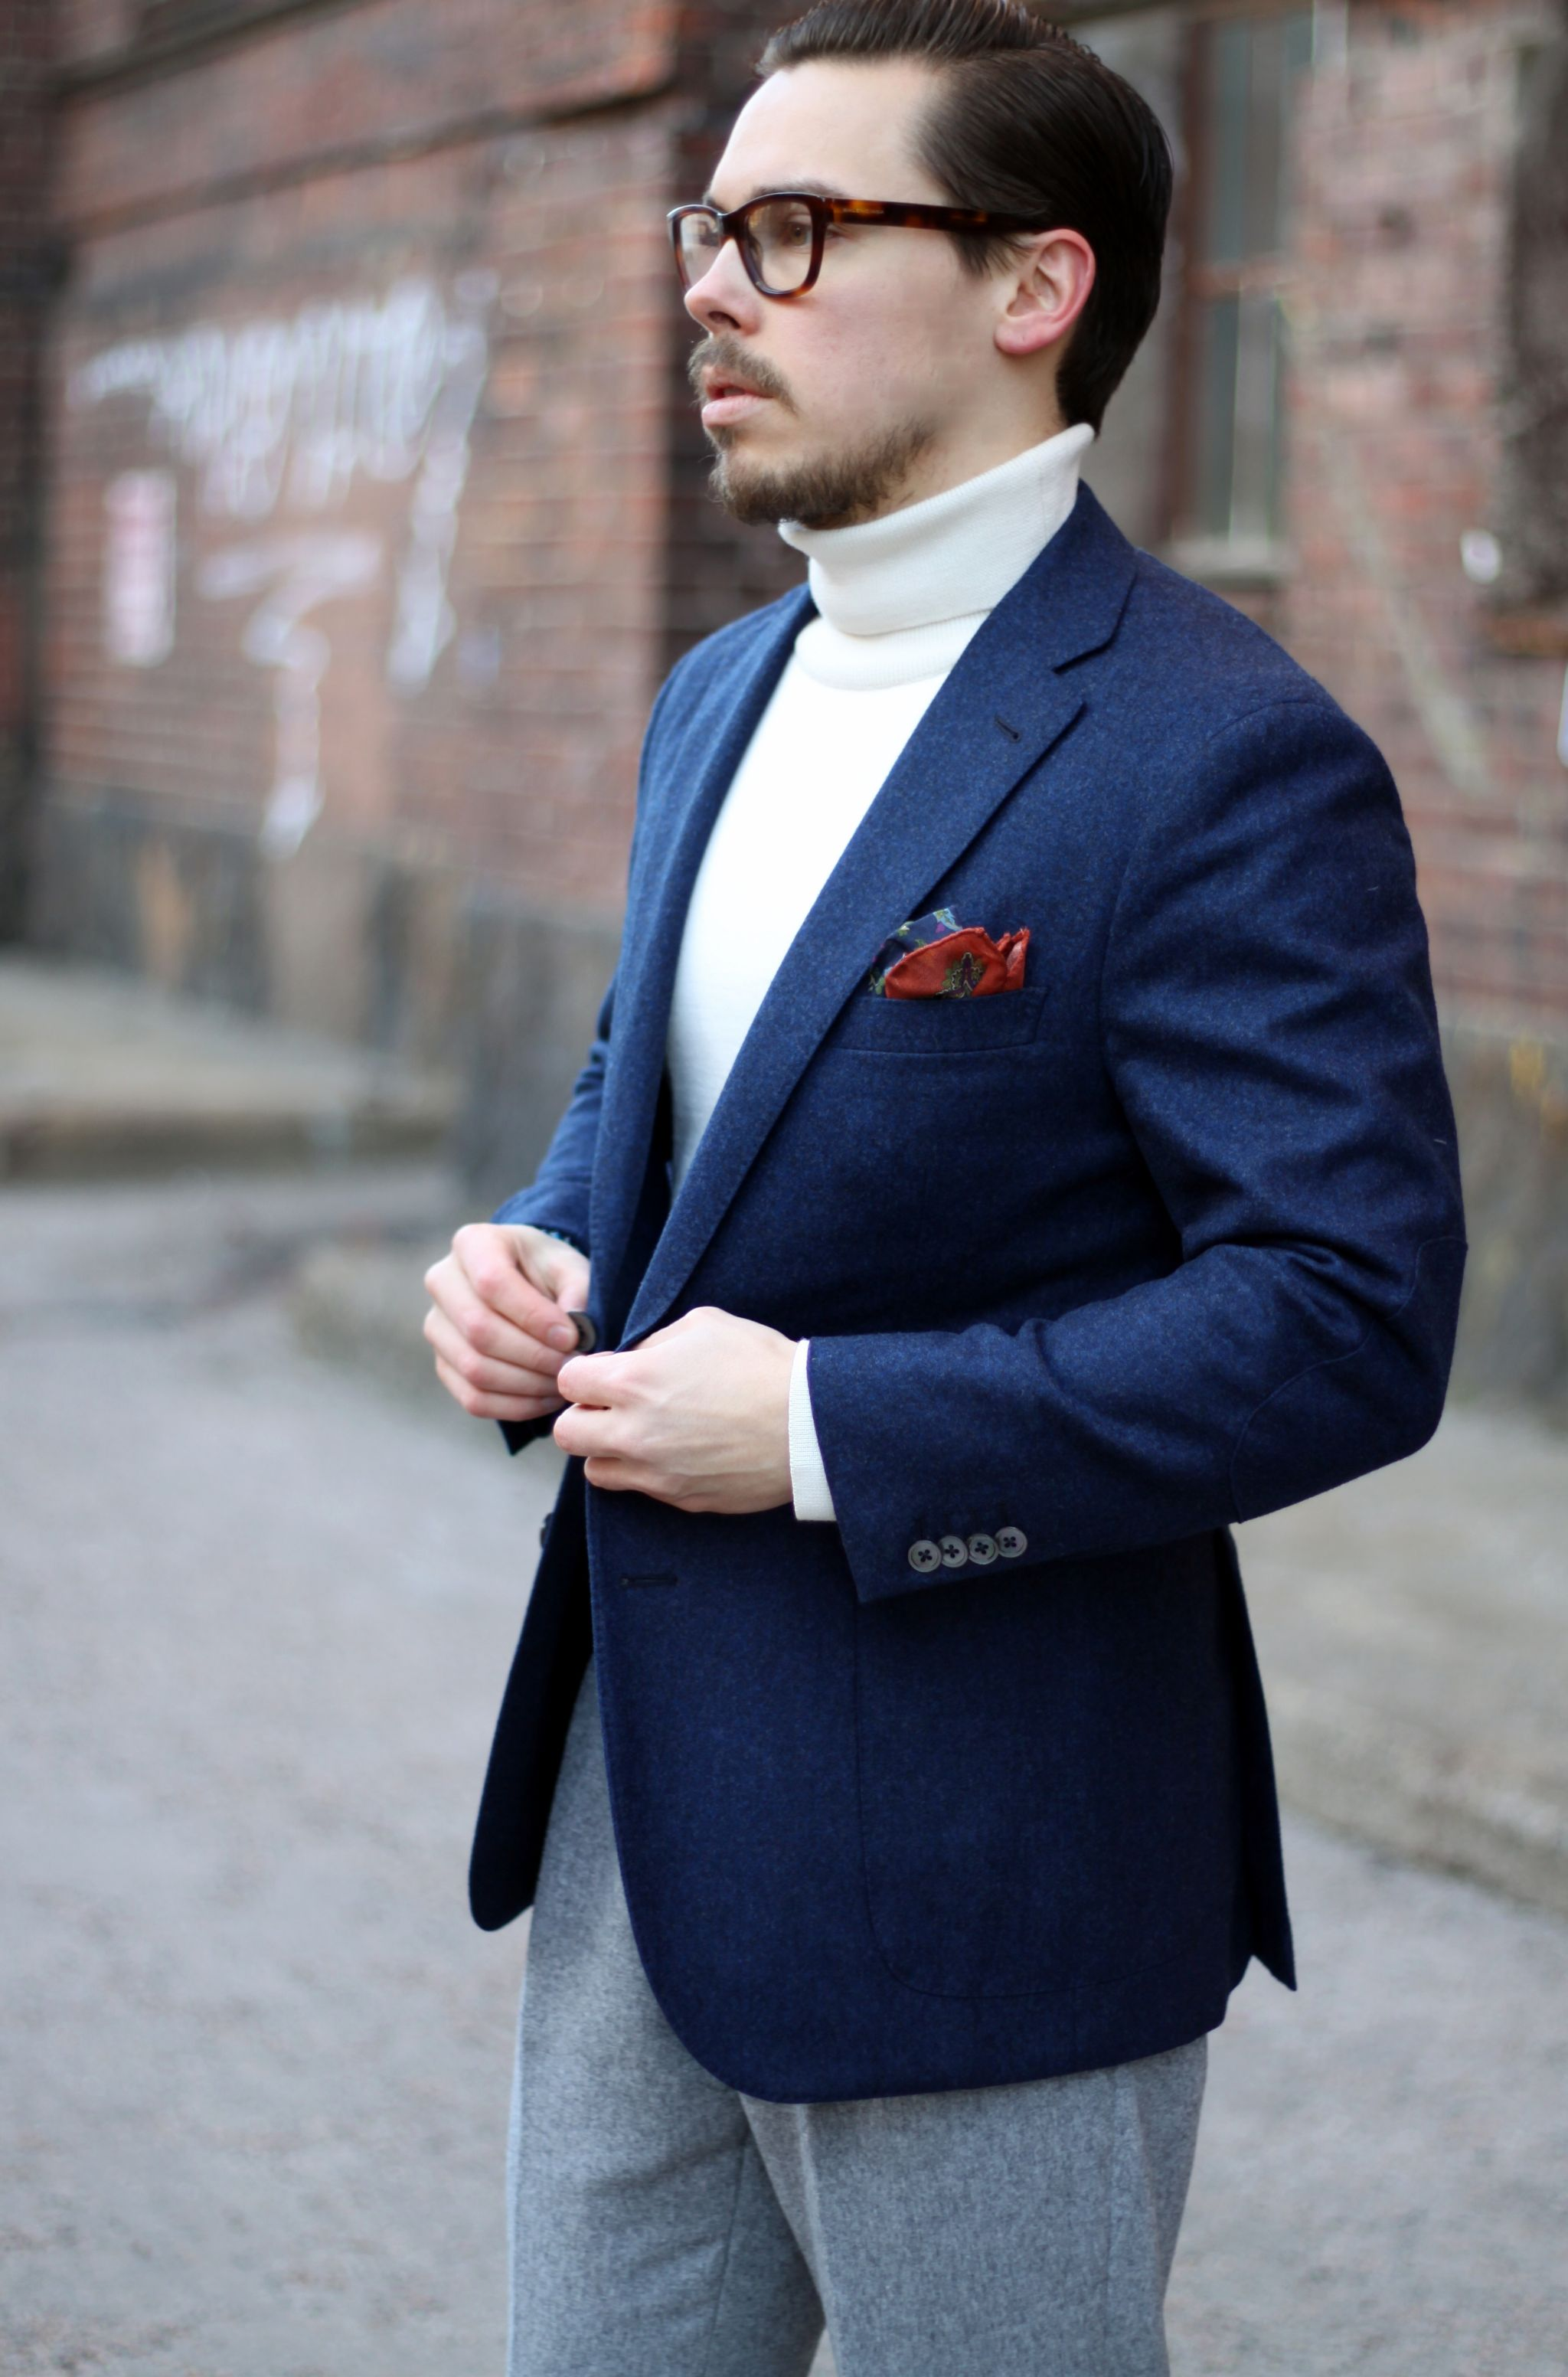 How to wear navy blue blazer for casual occasion